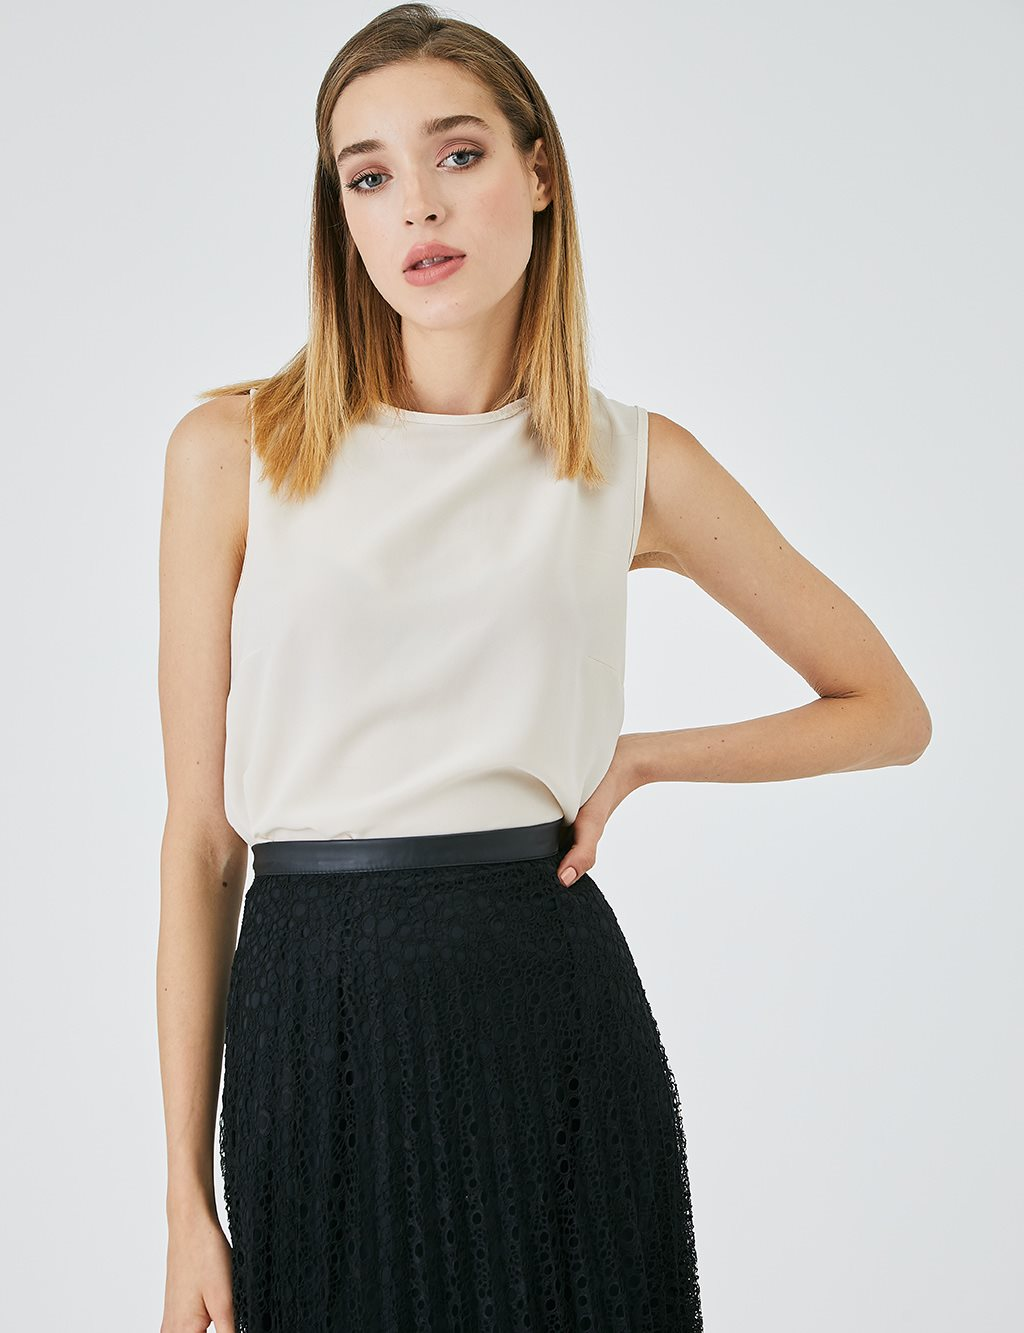 Pleated Mesh Skirt A20 12054 Black